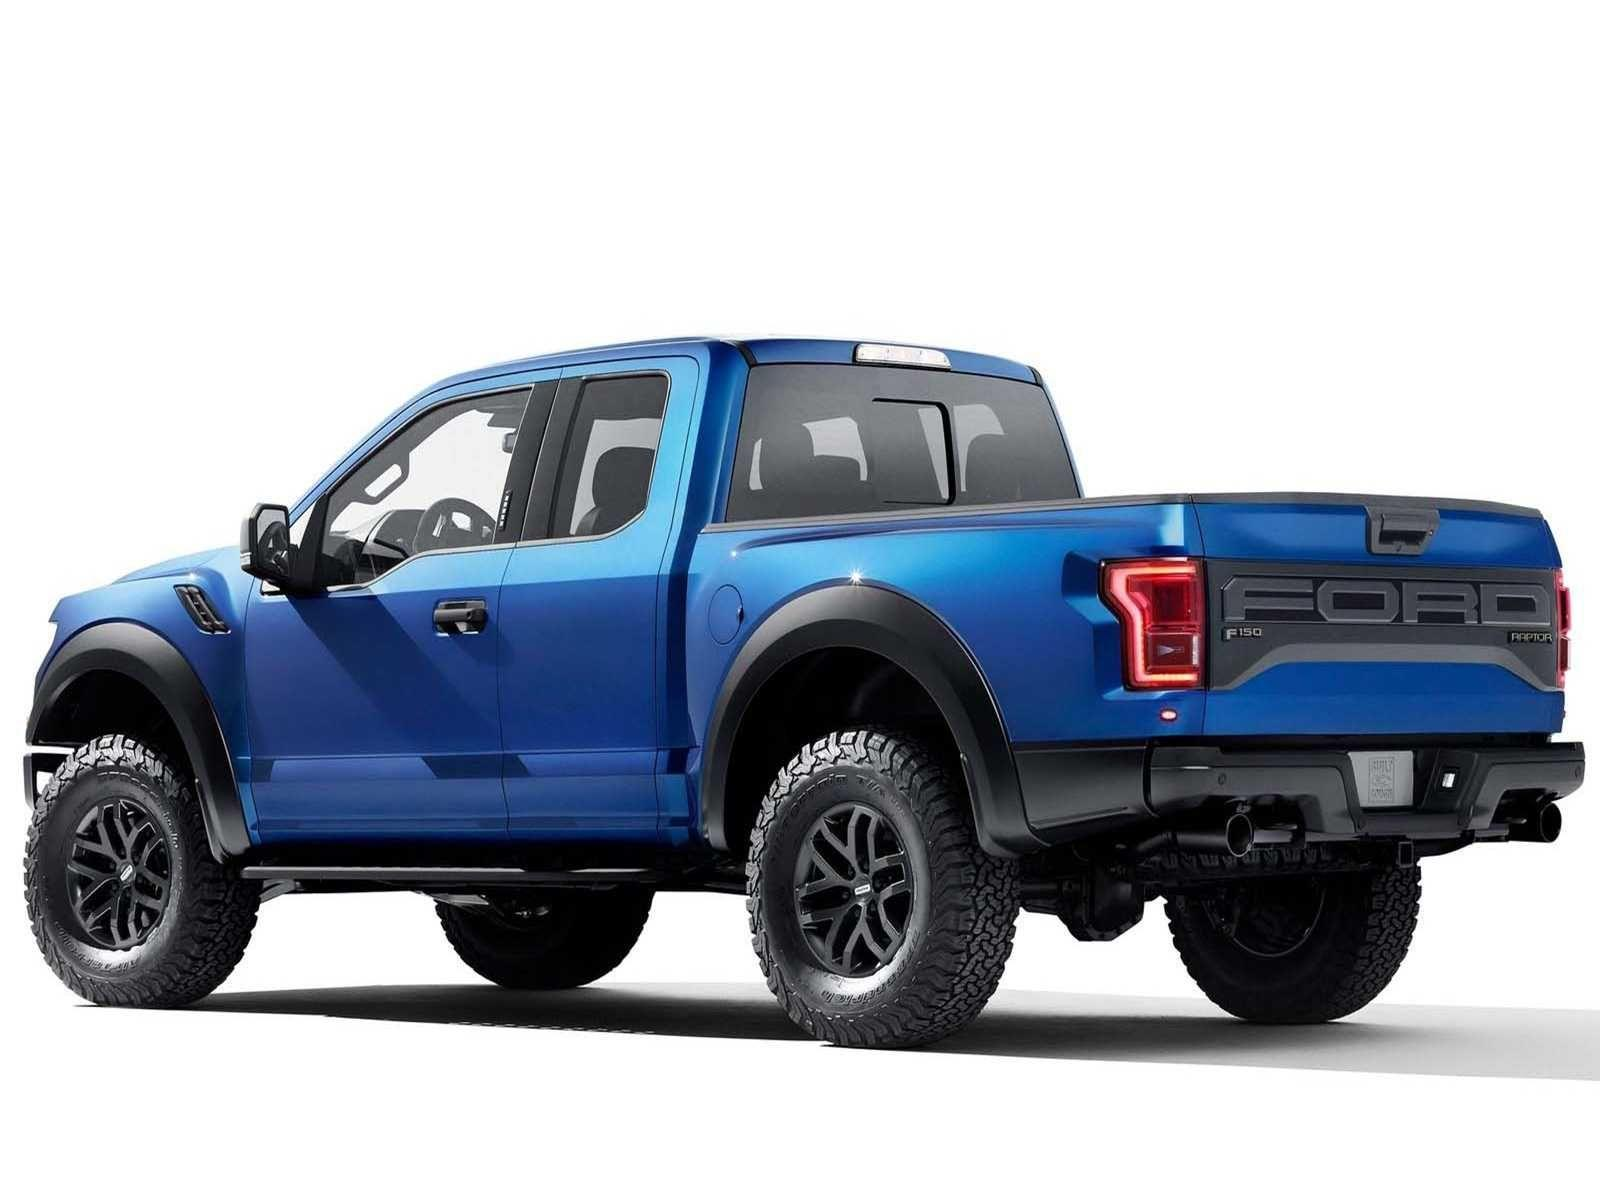 2017 Ford F-150 Raptor Wallpapers HD - 2017 Ford F-150, Ford F-150 ...